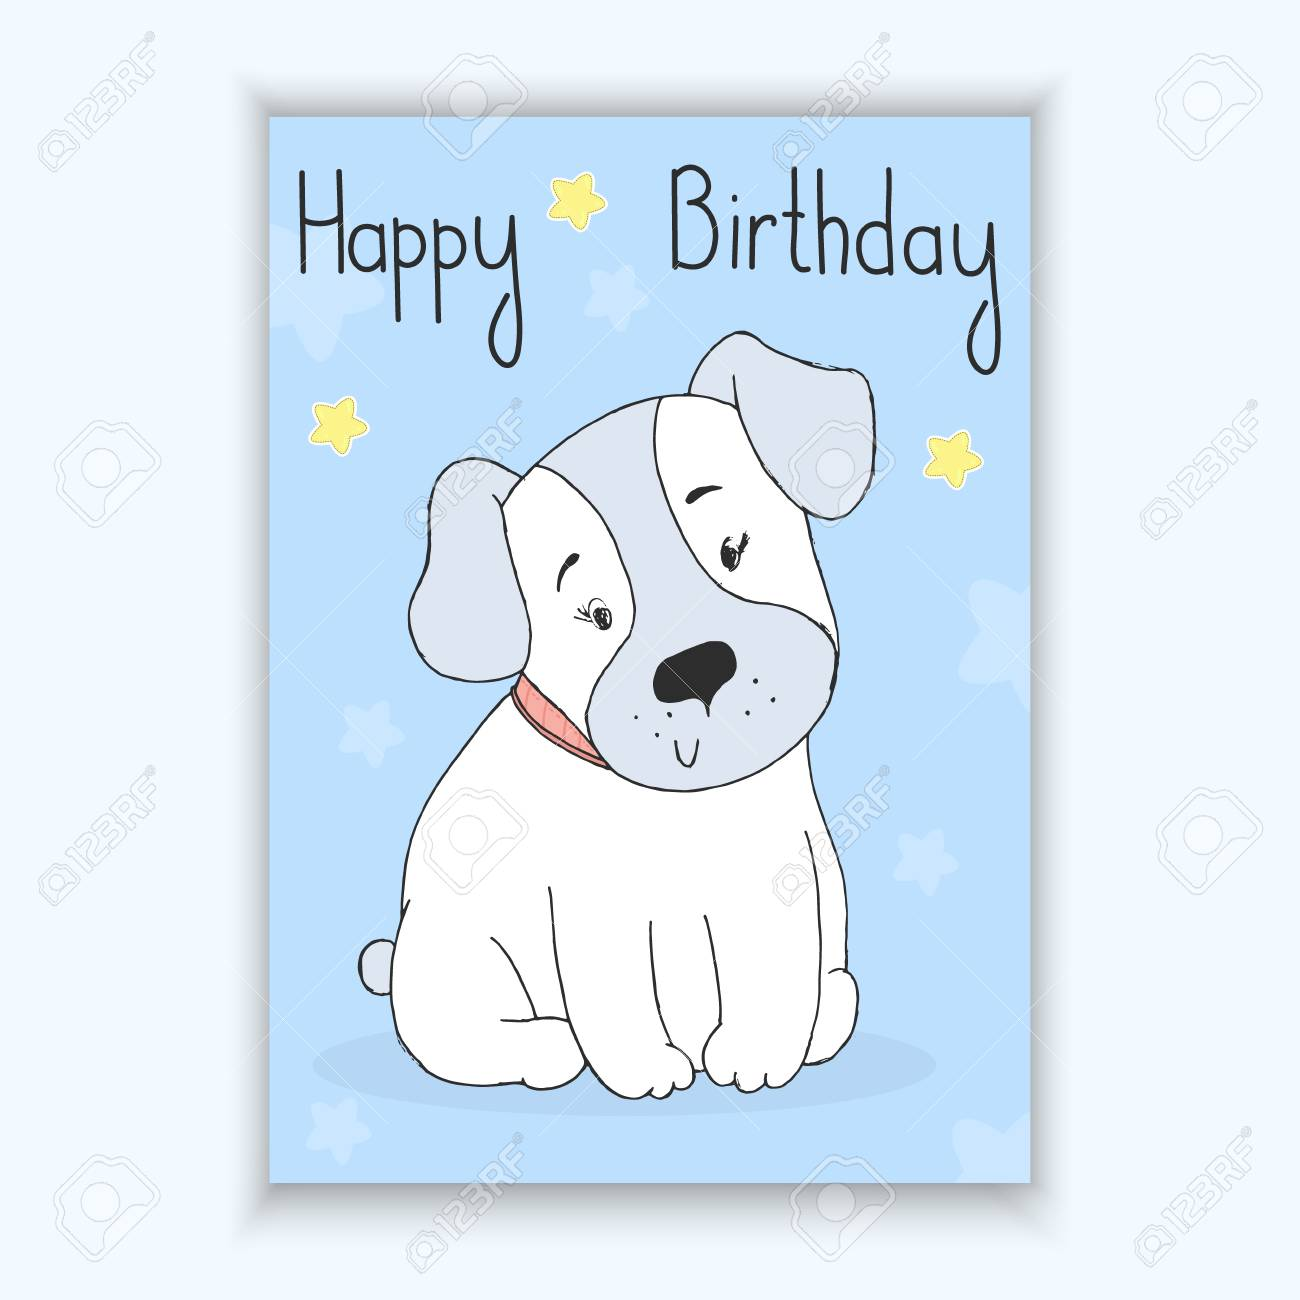 Happy Birthday Card With Hand Drawn Cute Cartoon Dog Vector Illustration Printable Template